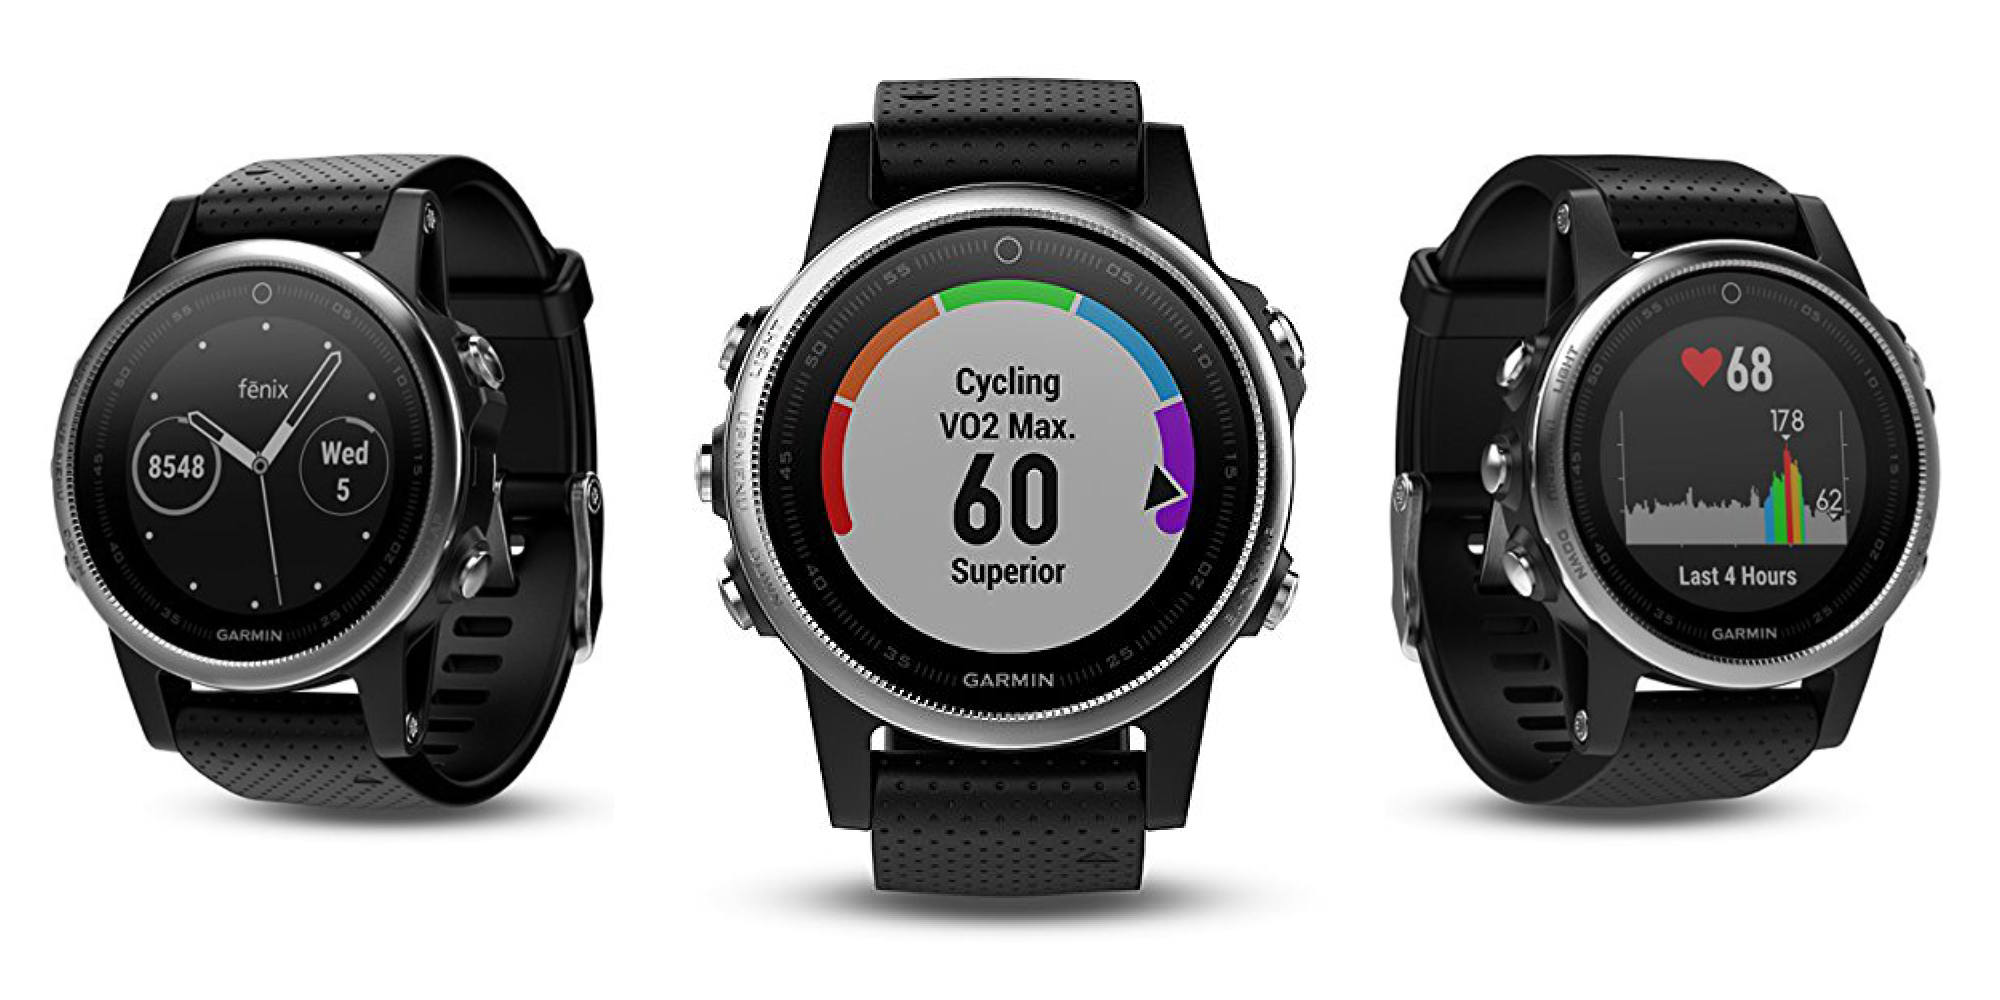 Garmin Fenix 5 – Black Friday and Cyber Monday Deals It will be game, set and match when you wear the Garmin Fenix 5 as this watch comes pre-loaded with a .